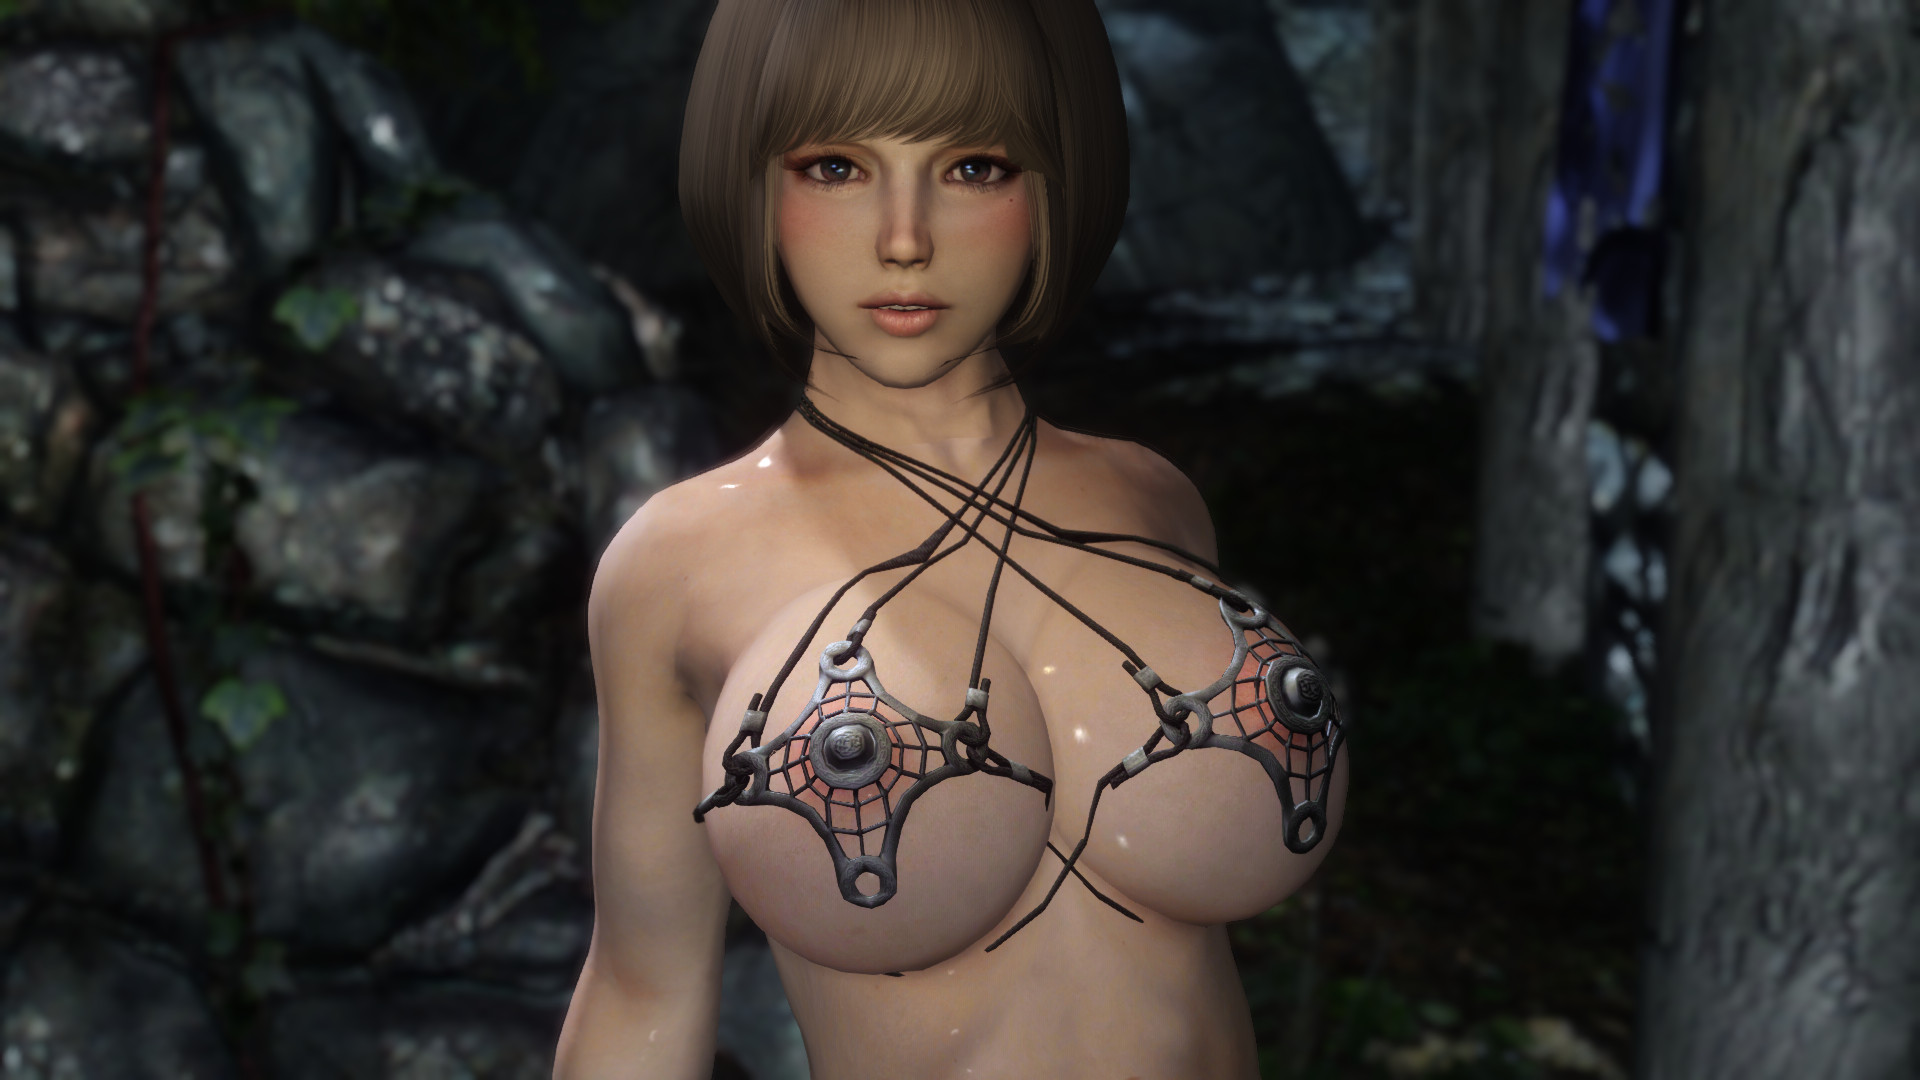 Fallout 3 nude female mods erotic image